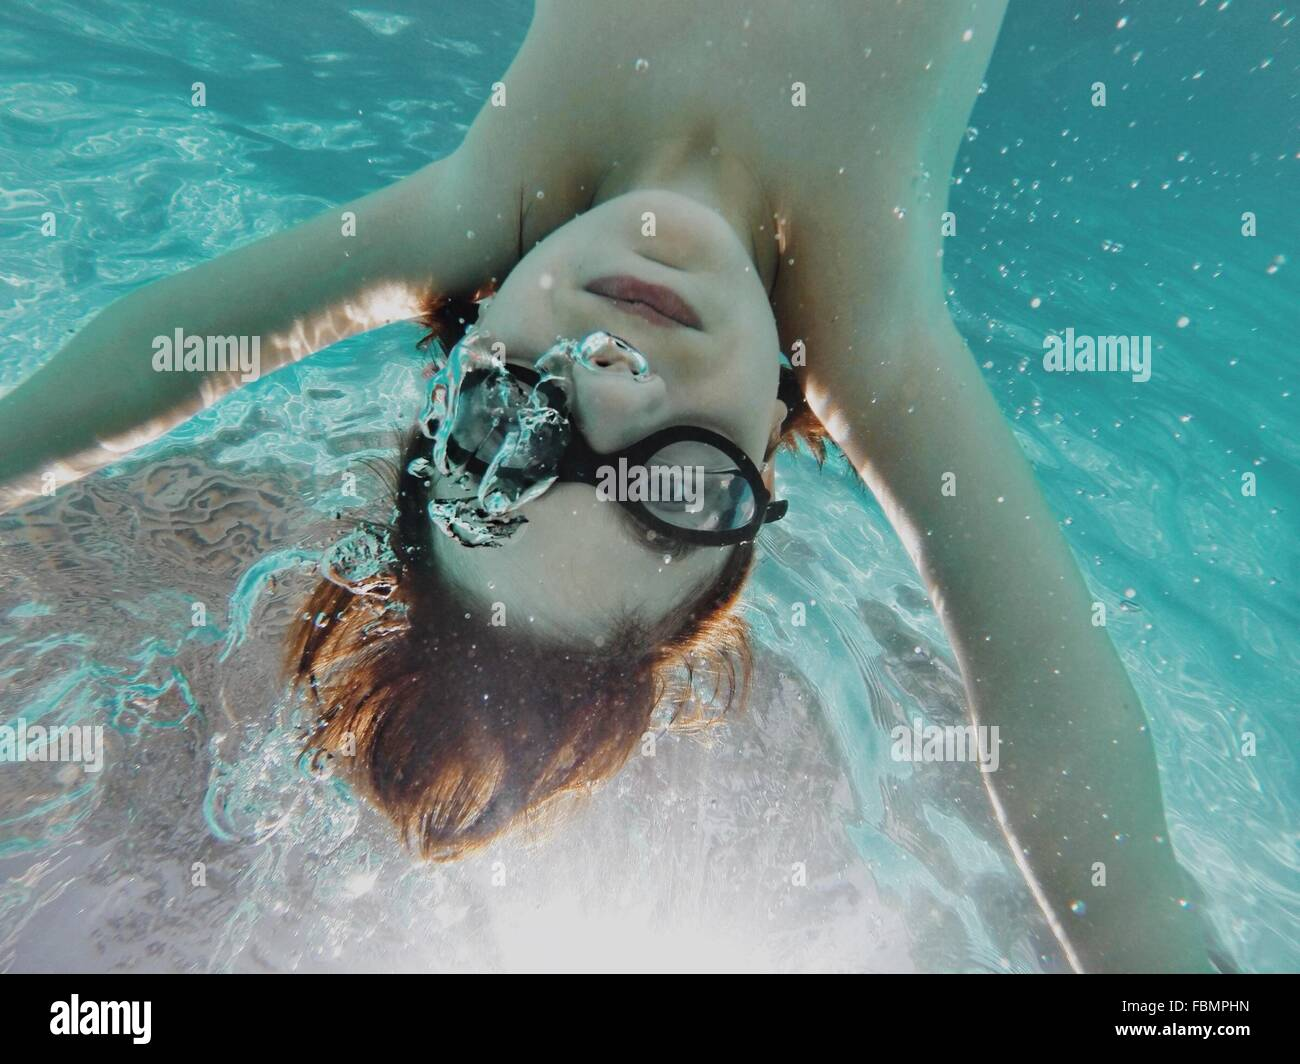 Upside Down Image Of Boy Swimming In Swimming Pool - Stock Image